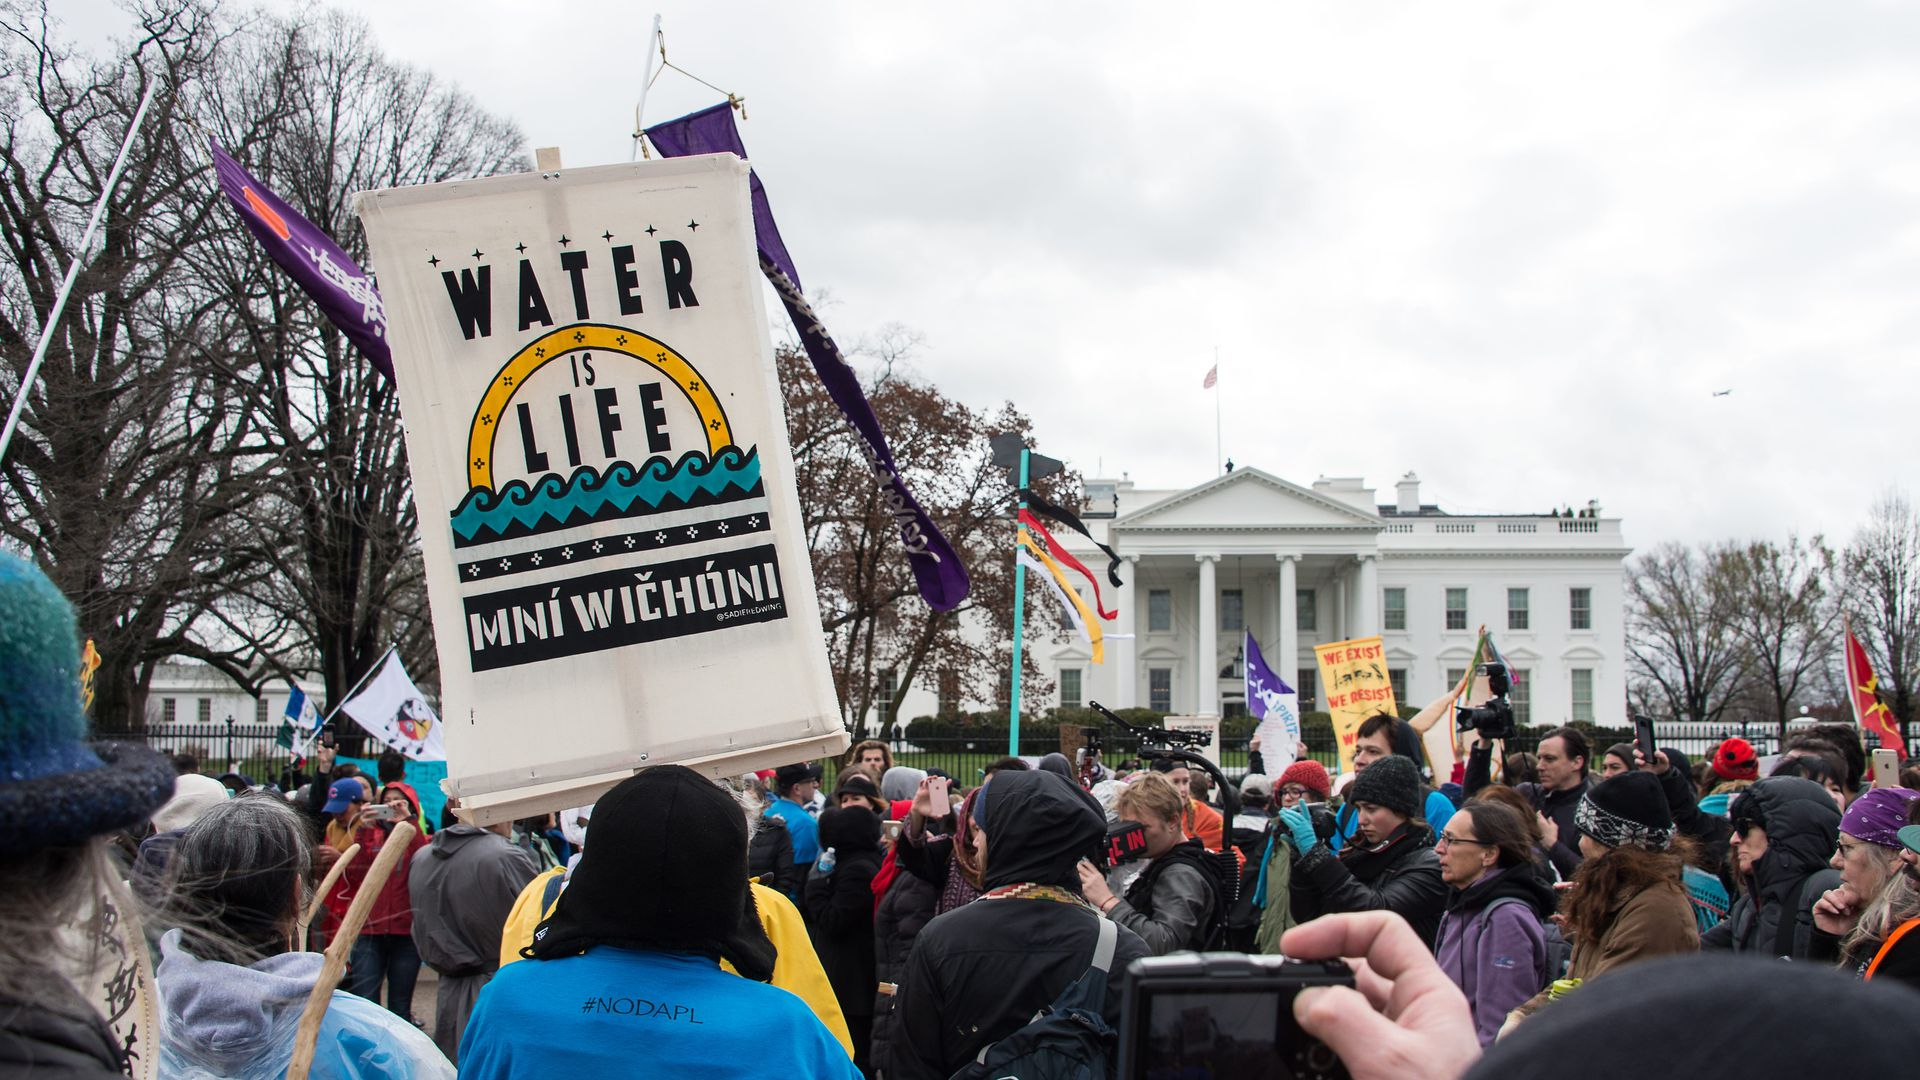 """In this image, protestors hold a banner that reads """"water is life"""" in front of the White House."""